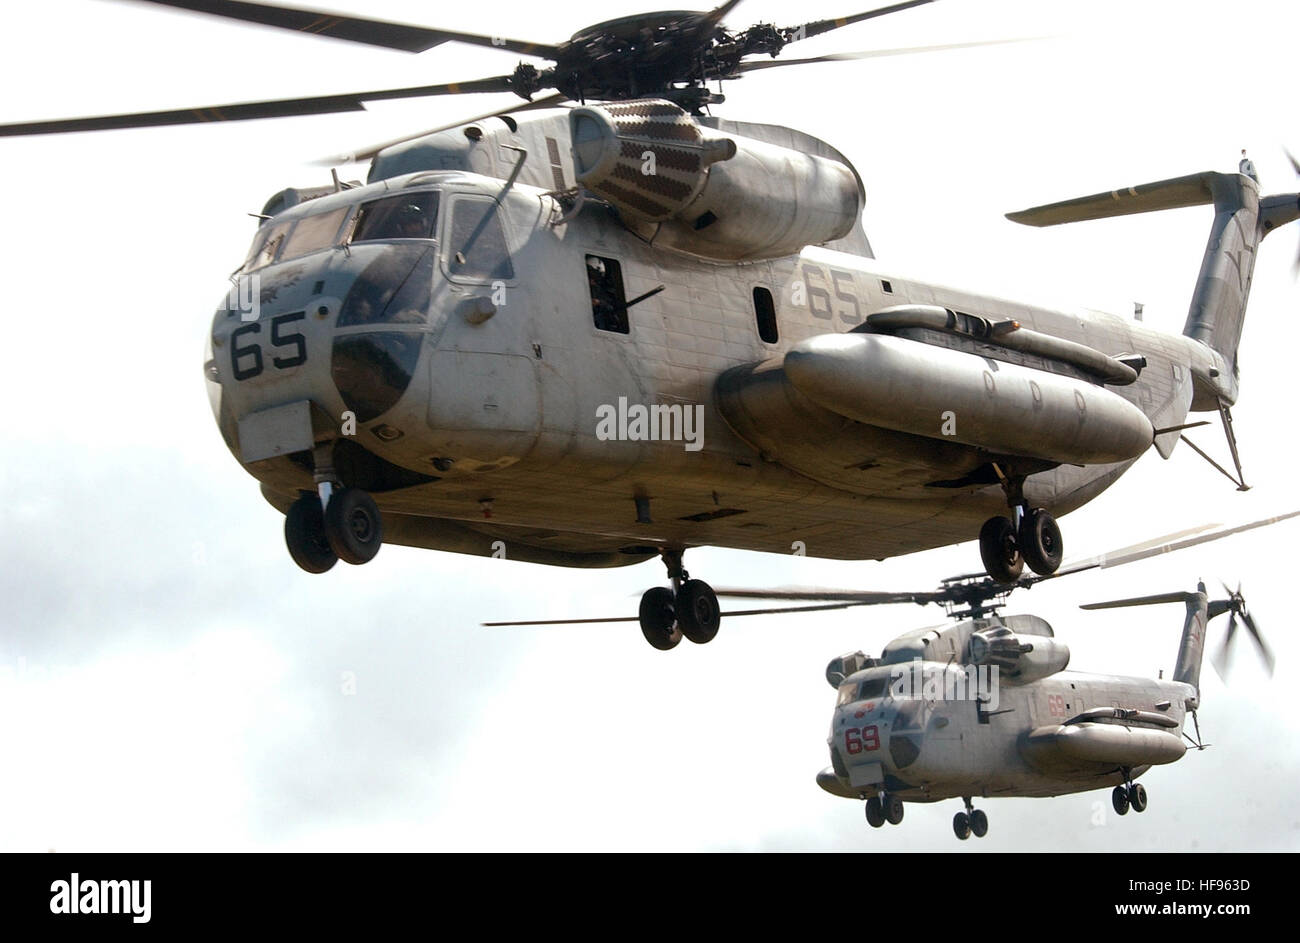 040717-N-6932B-204 Kahuku Training Area Oahu, Hawaii (July 17, 2004) - CH-53D Sea Stallion helicopters assigned - Stock Image